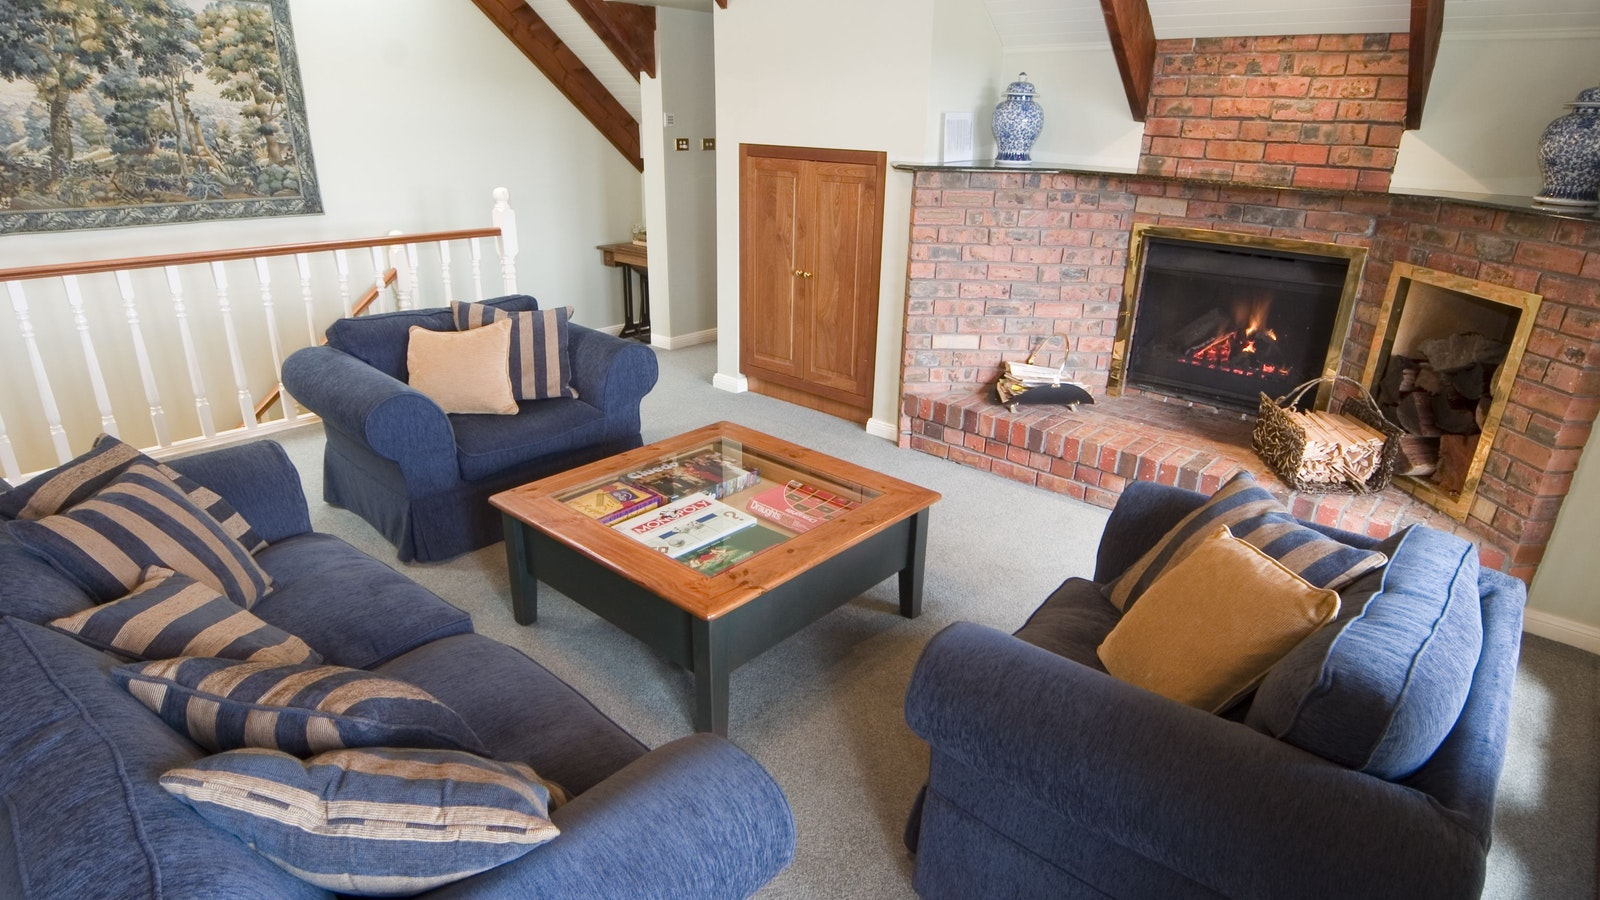 The upstairs lounge and fireplace